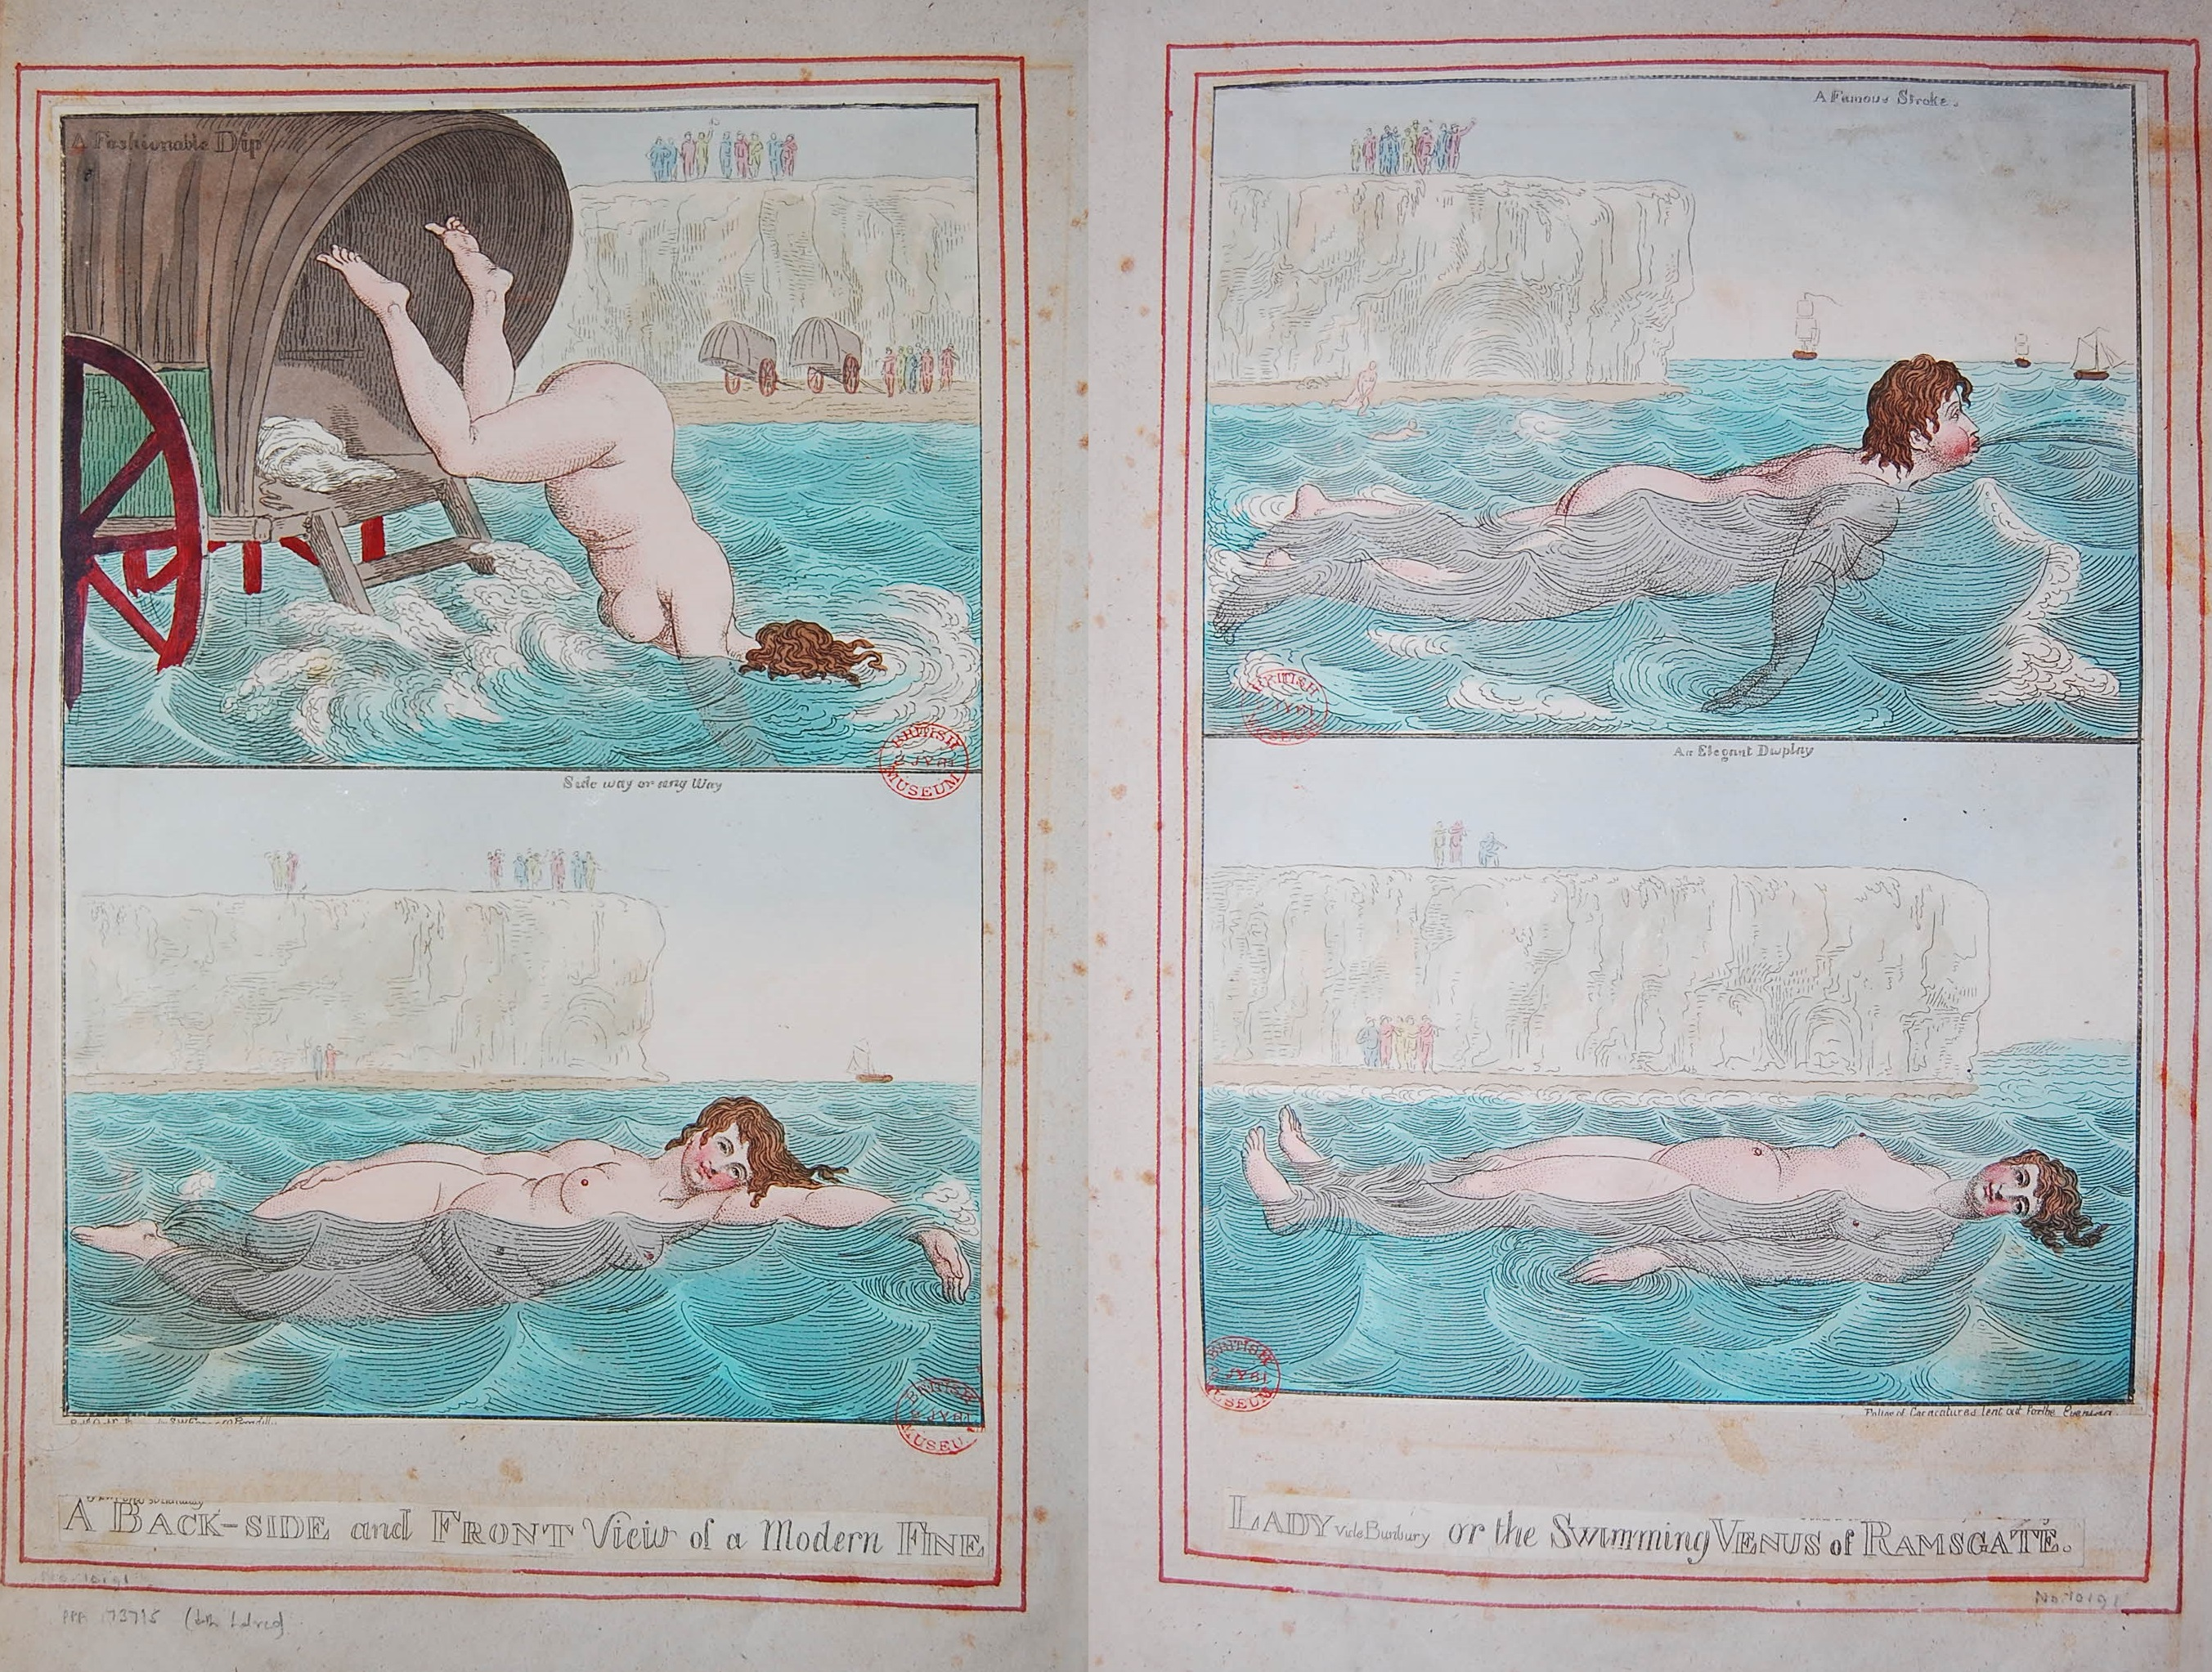 A Back-side and Front view of a modern fine lady vide Bunbury or the Swimming Venus of Ramsgate 1